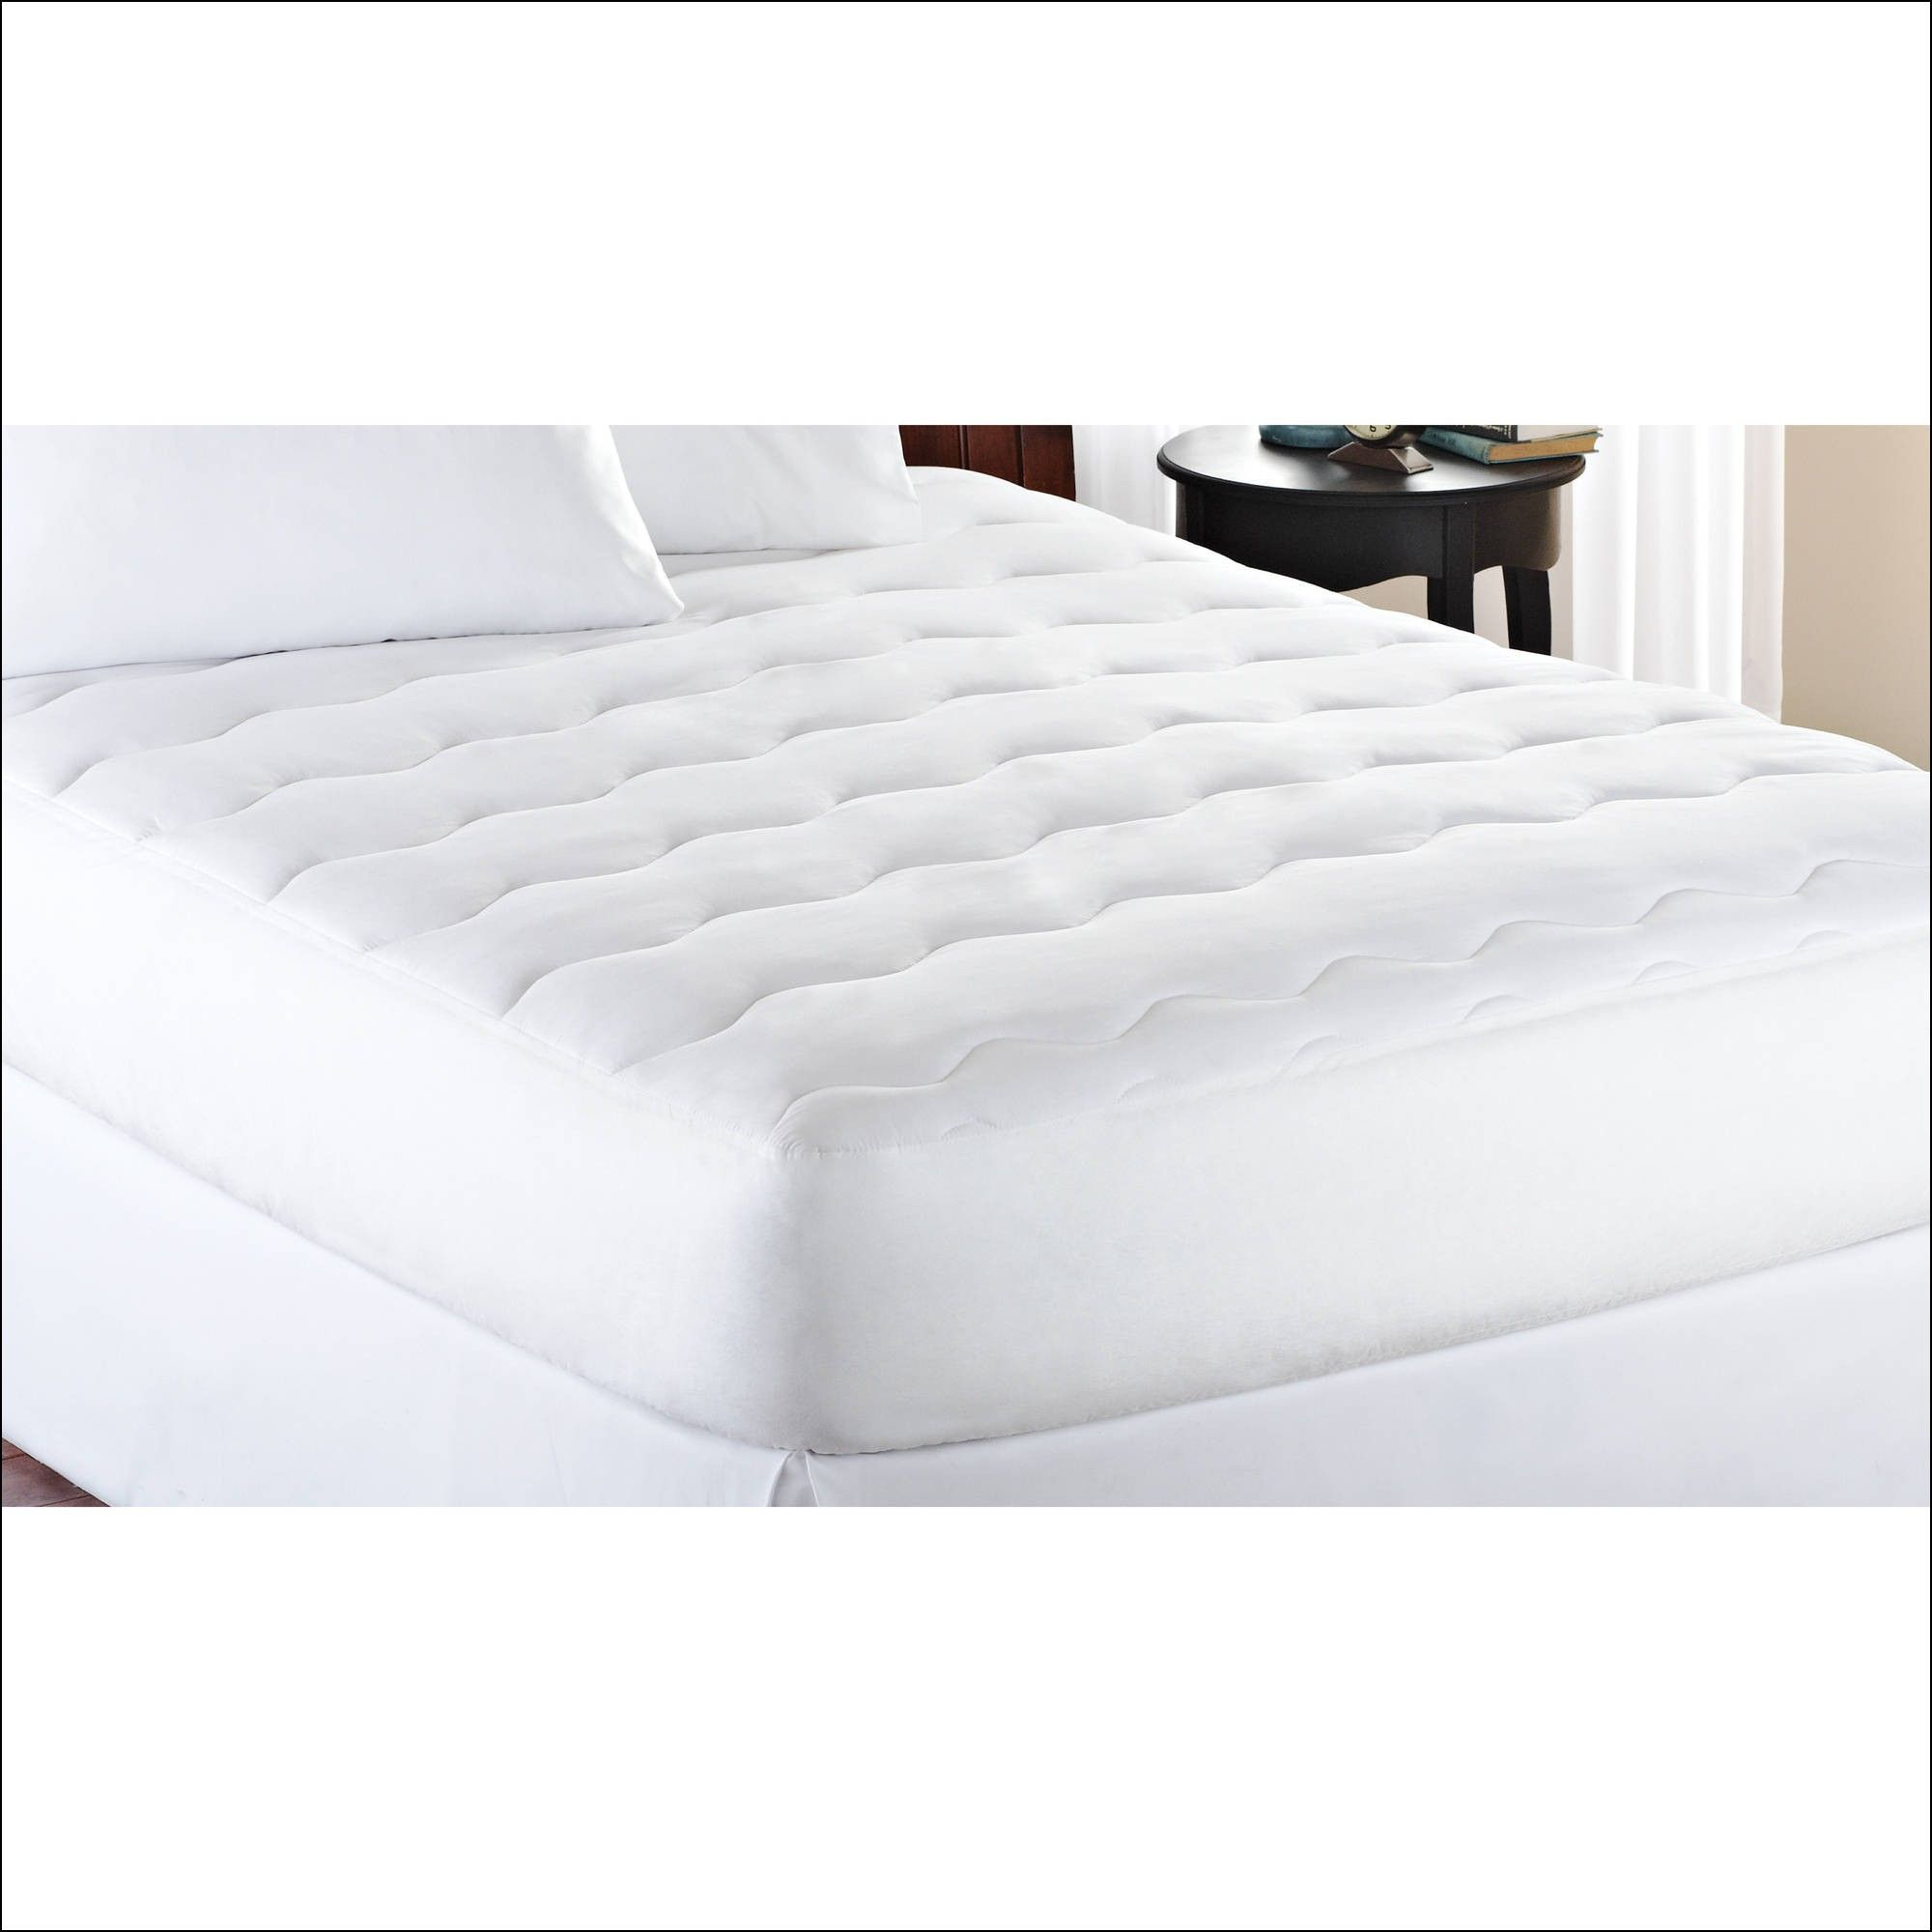 for polyester size pad natural your under use pads goose cotton mattress topper ounces fiber of quilted the is sheets designed top queen premium hopen with it pillow k